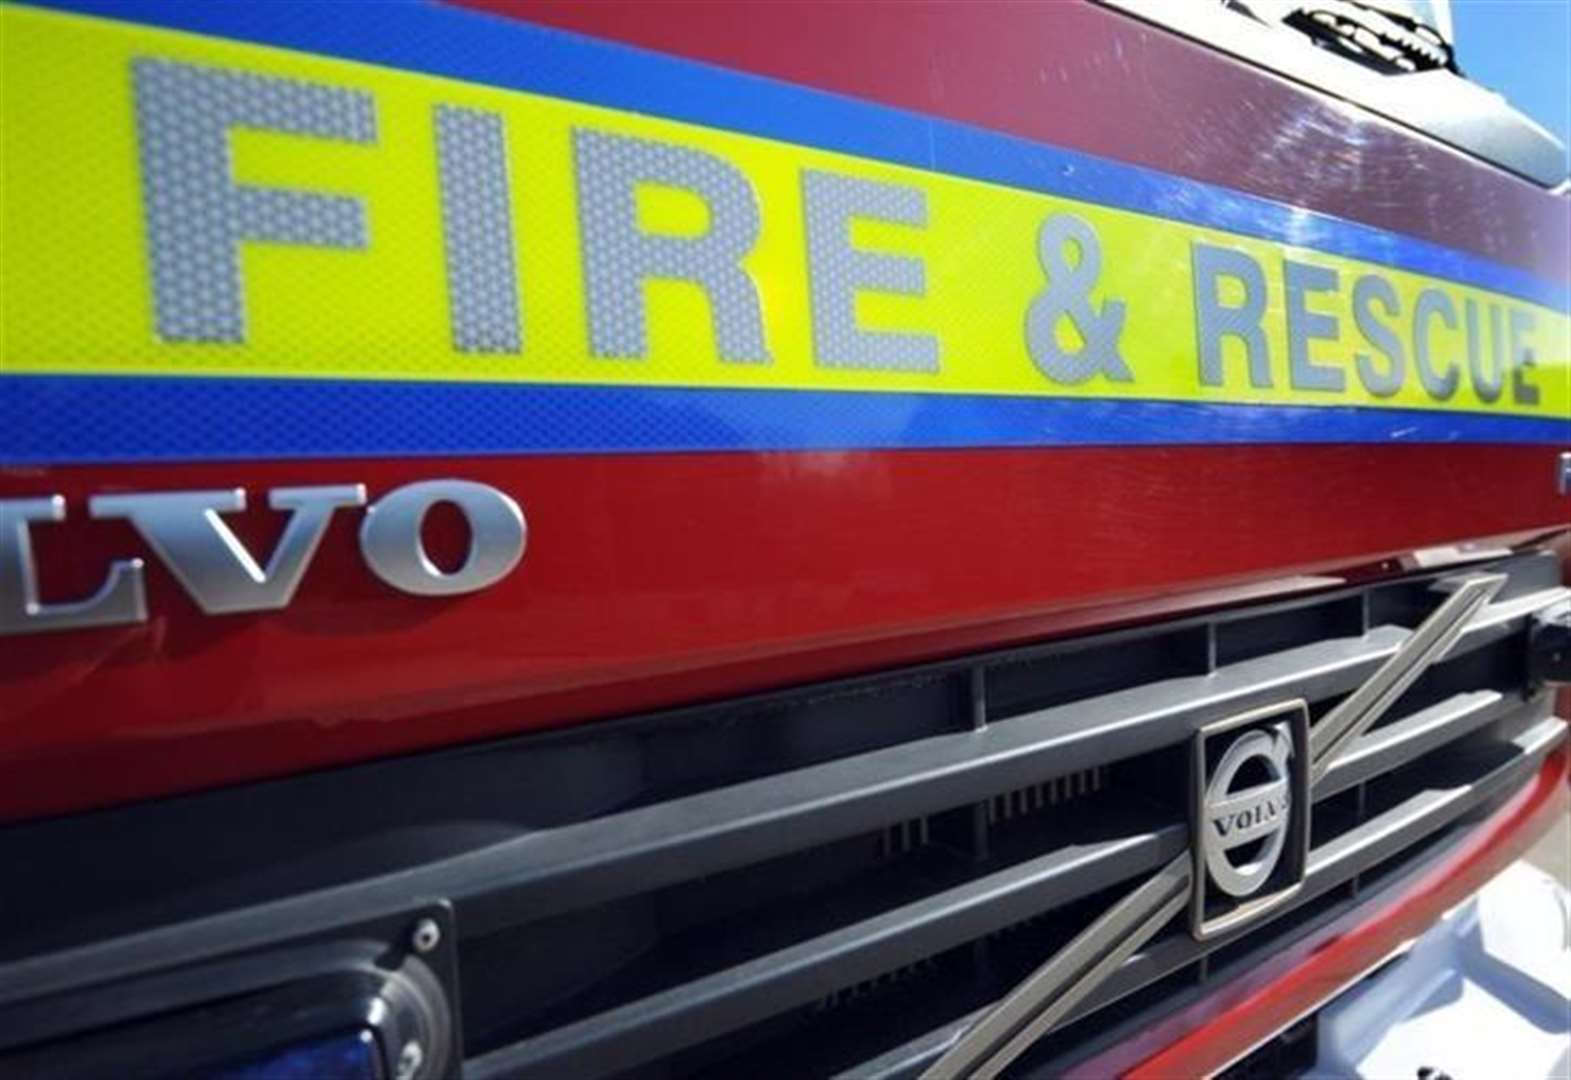 Crews attend vehicle fire in Tallington